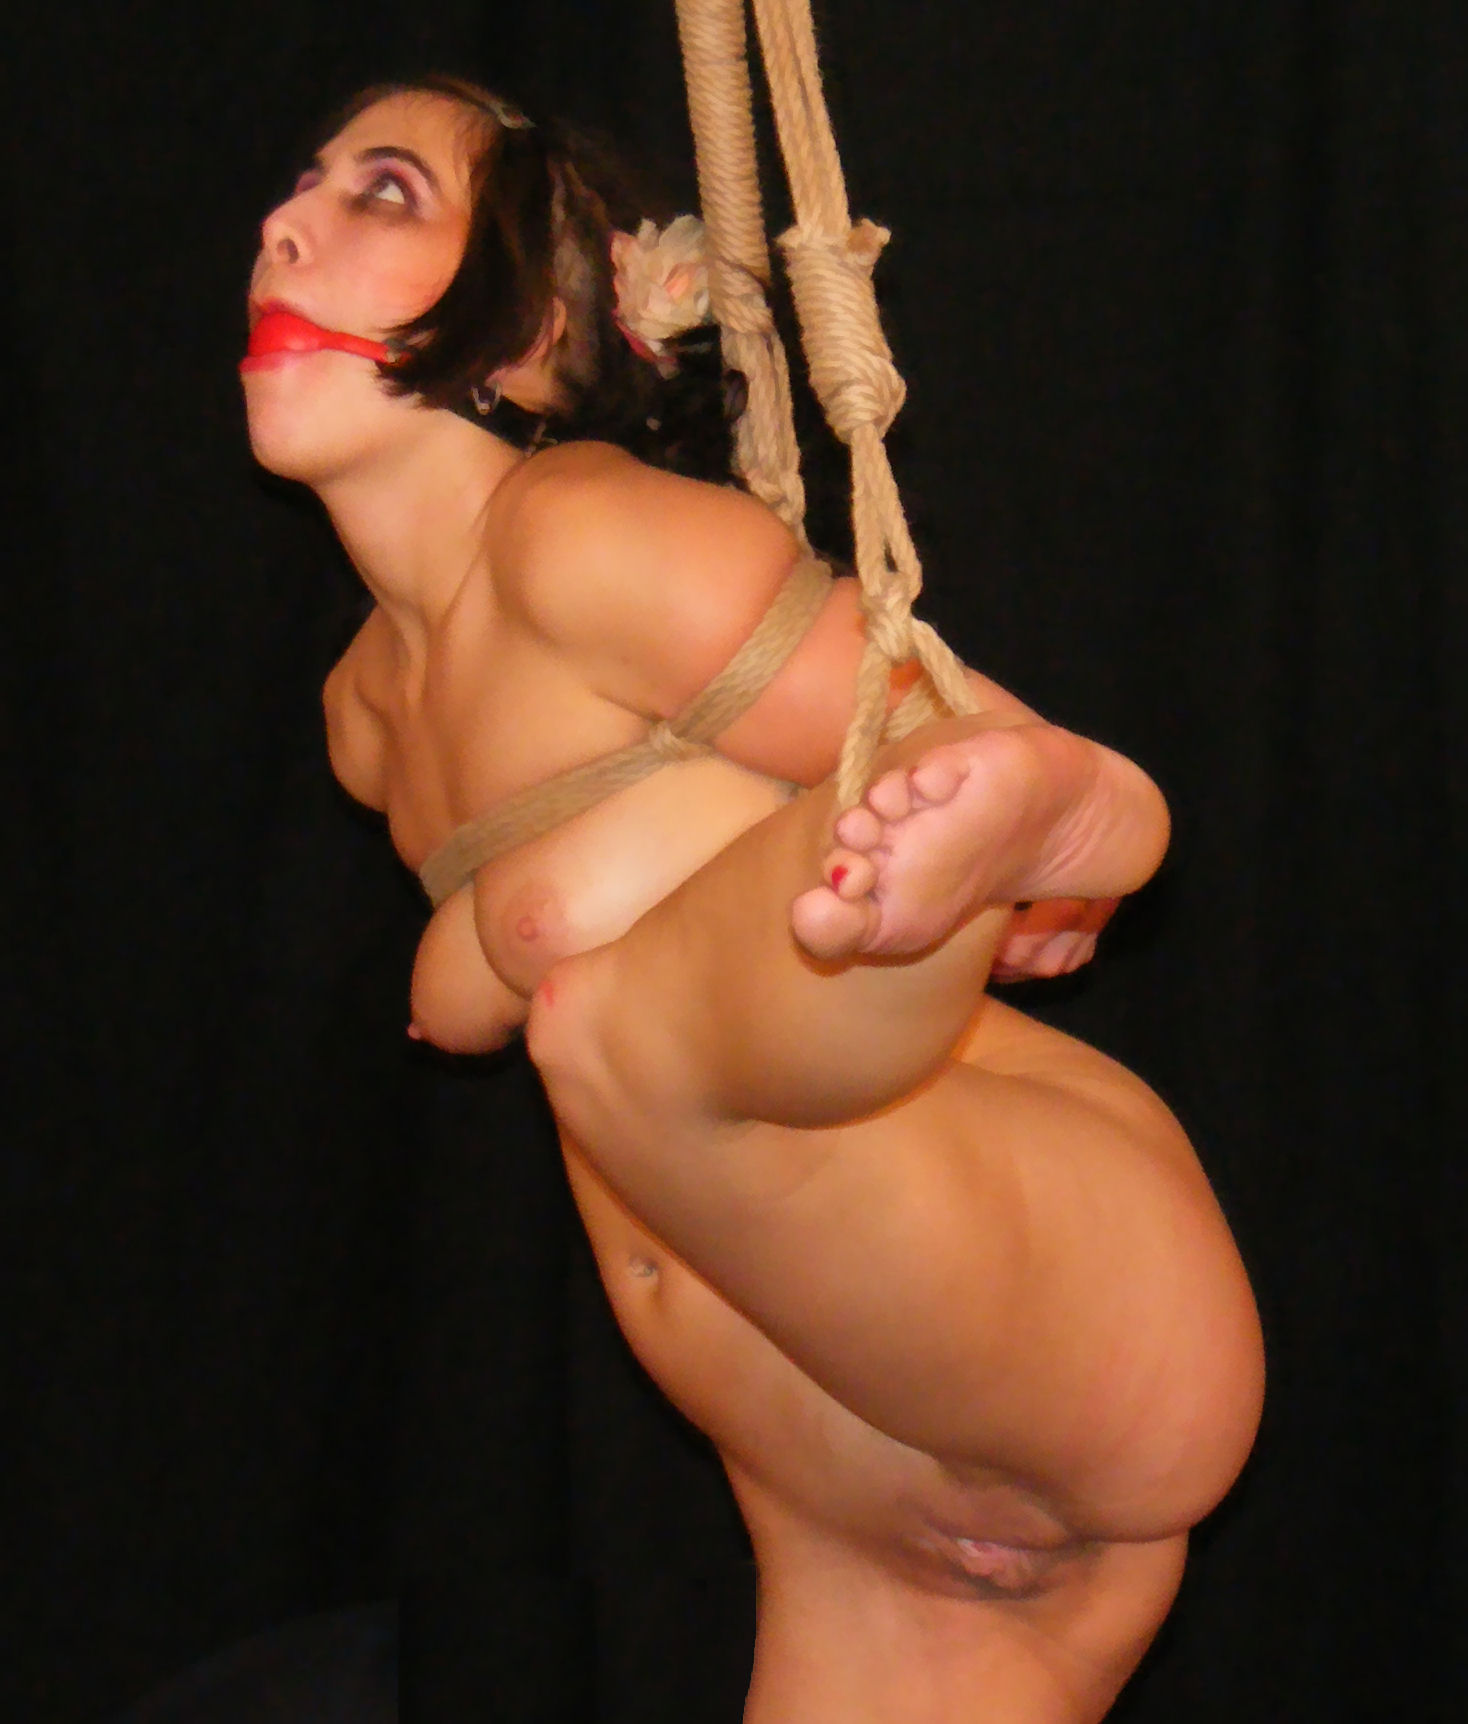 Chicks tied up naked #4